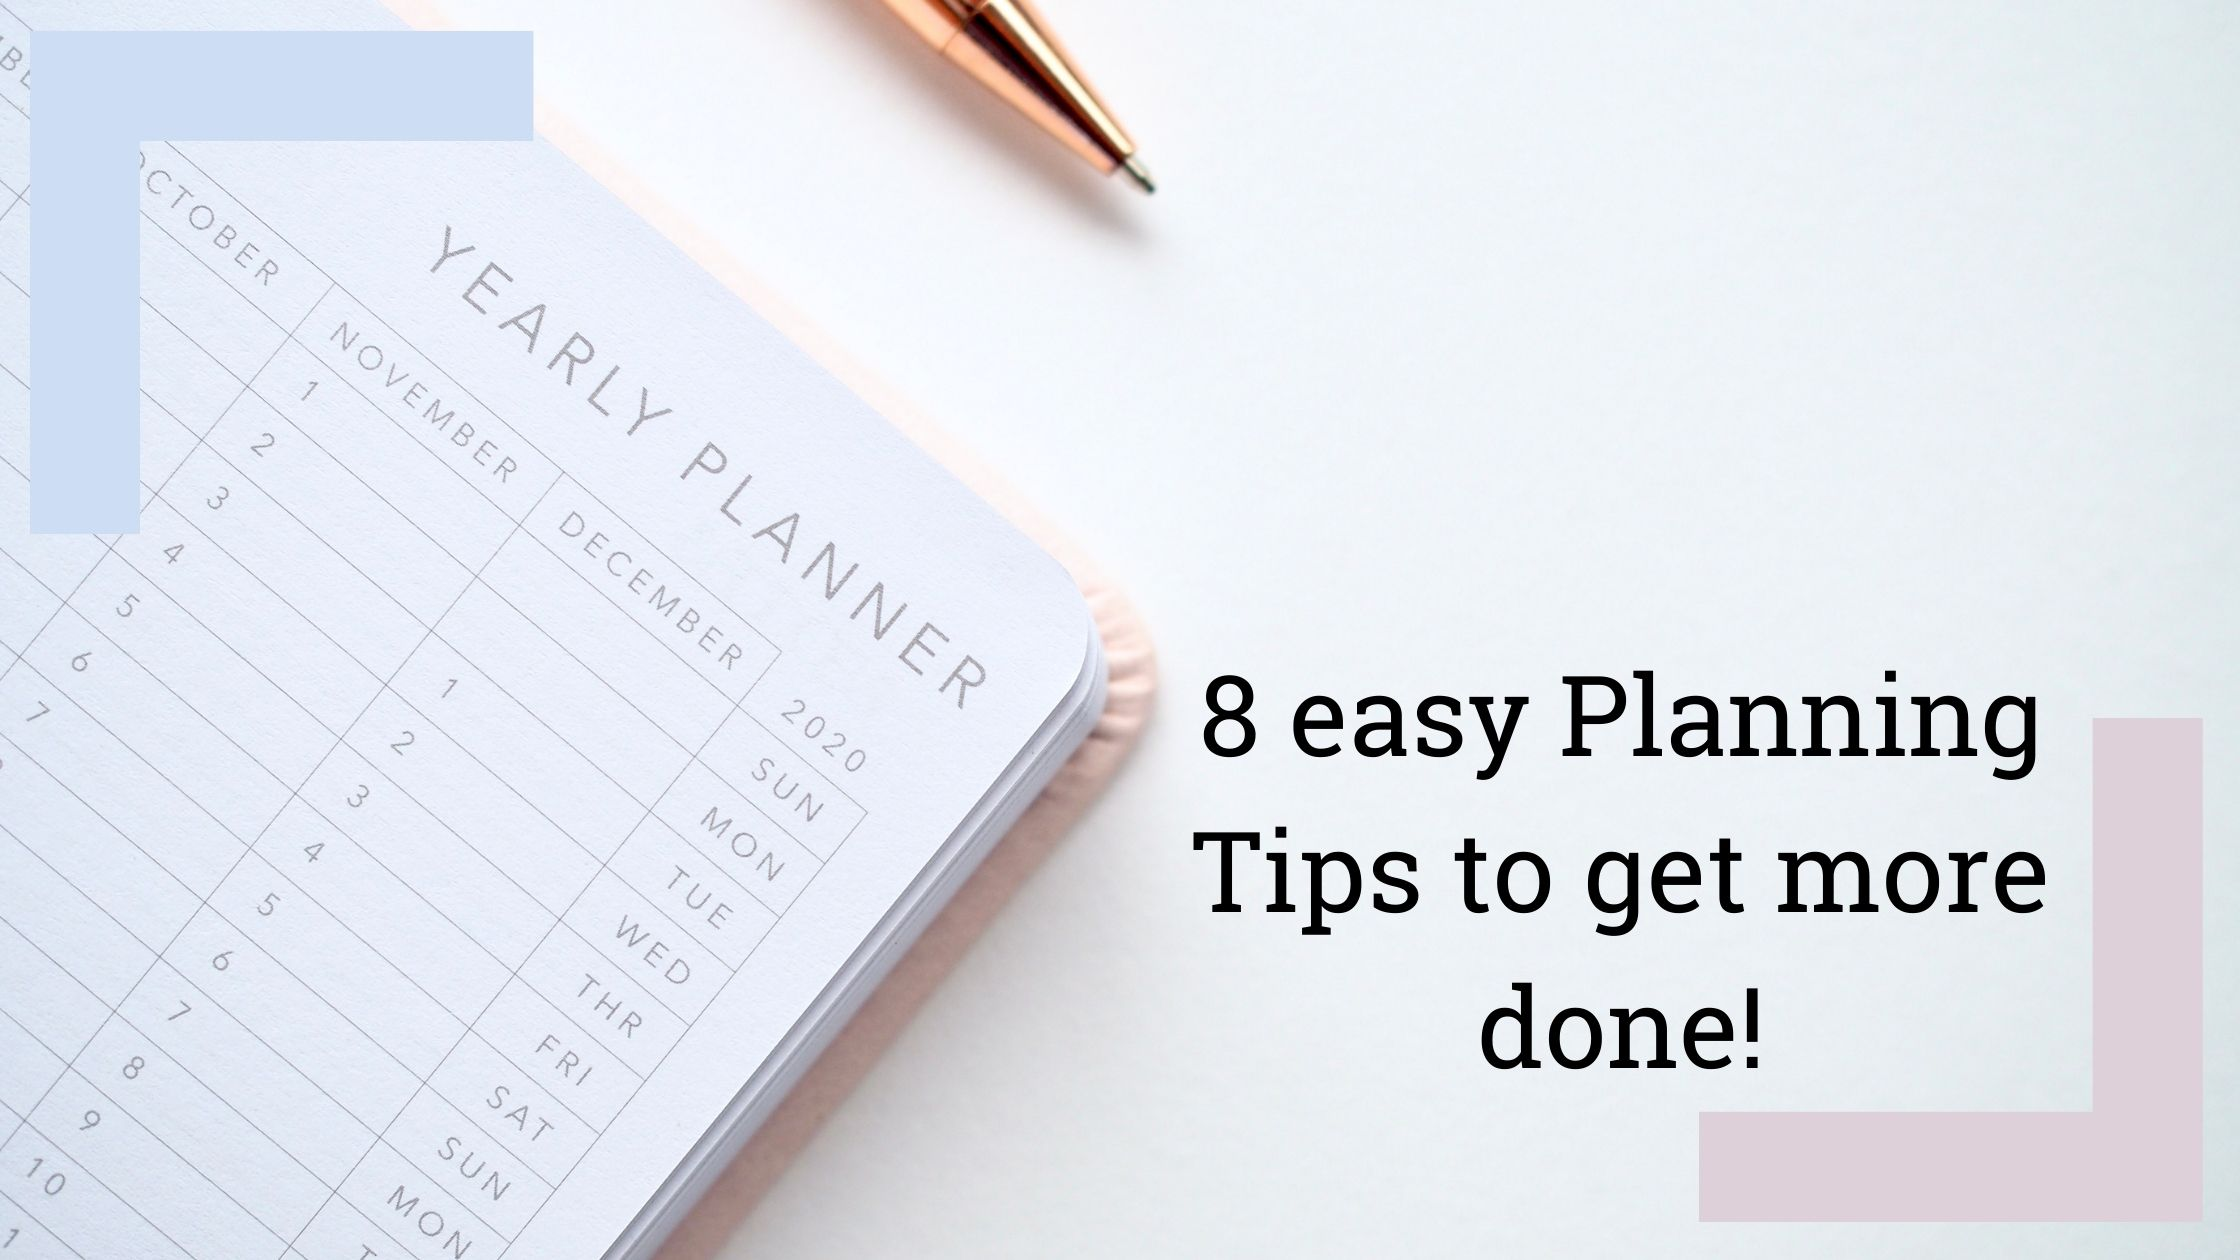 8 planning tips to help you get more done quickly & smoothly